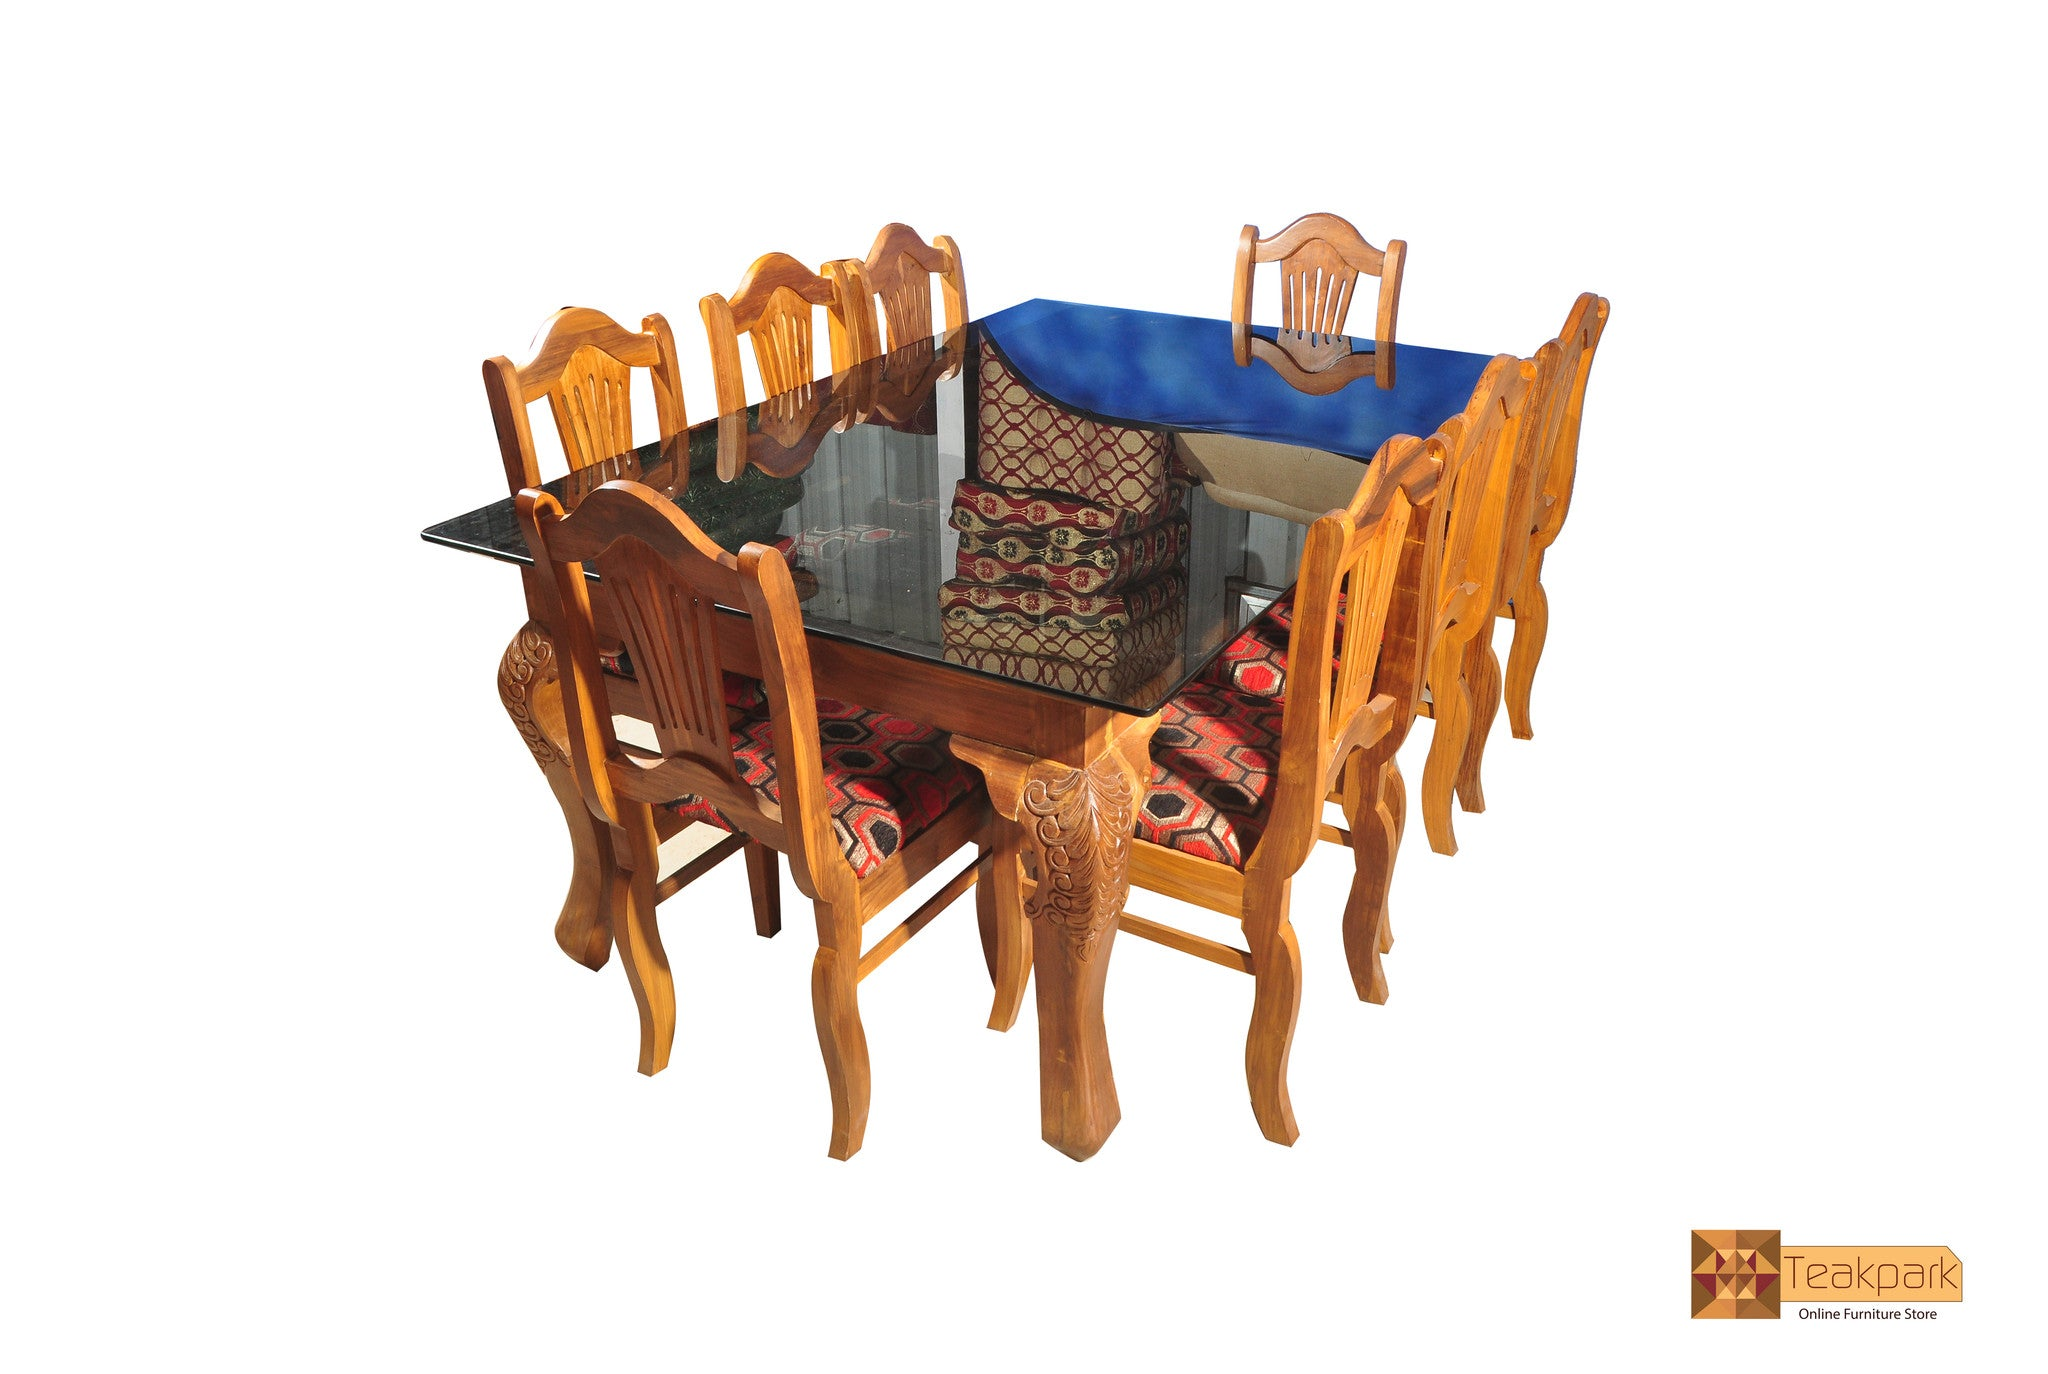 Kaveri Teak Wood Dining Table With Glass Top Teakpark